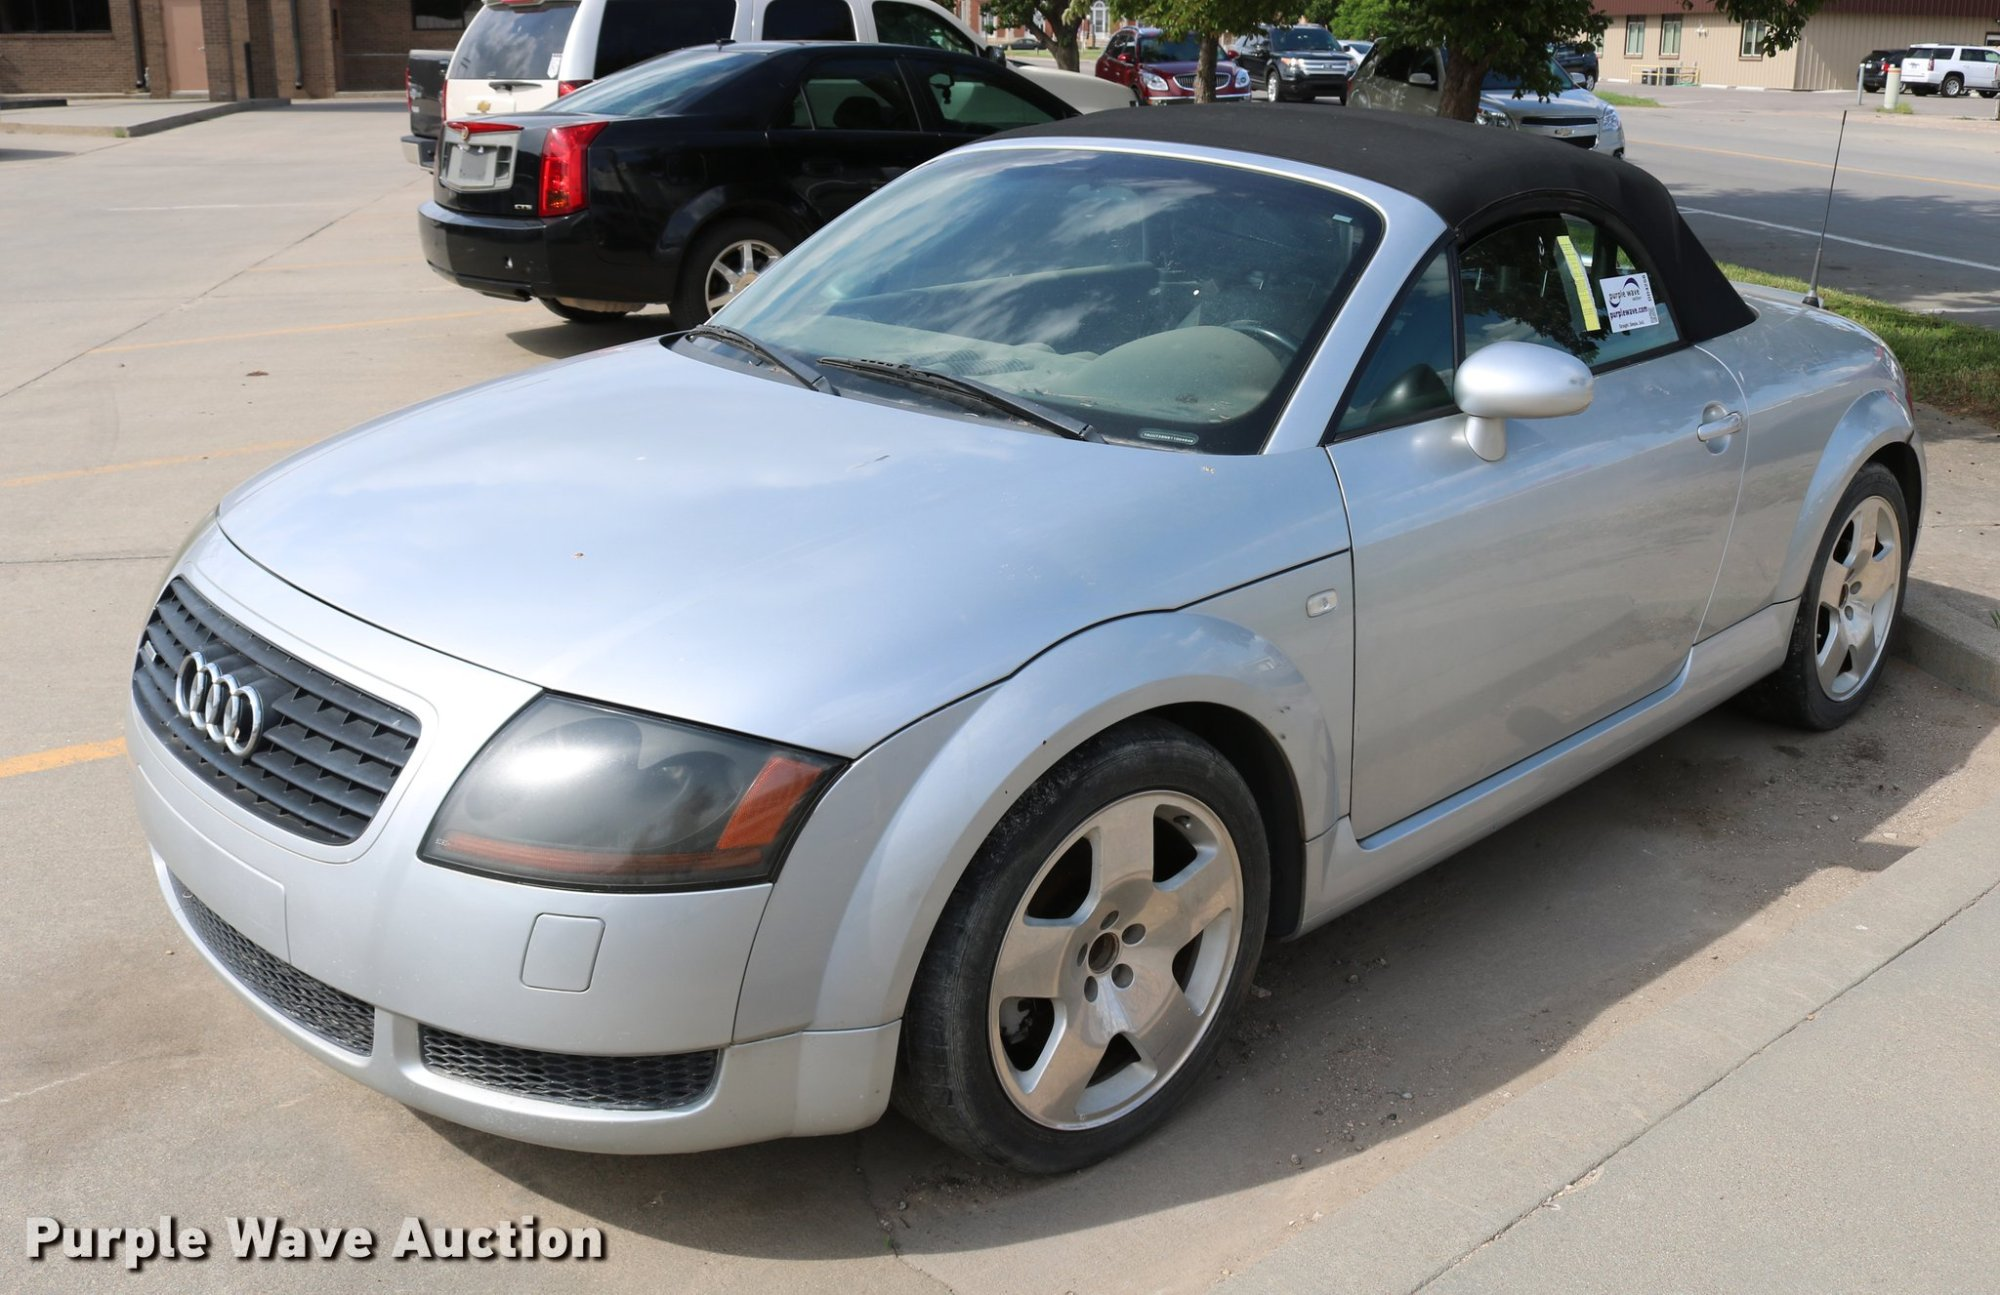 hight resolution of dd4258 image for item dd4258 2001 audi tt roadster quattro convertible